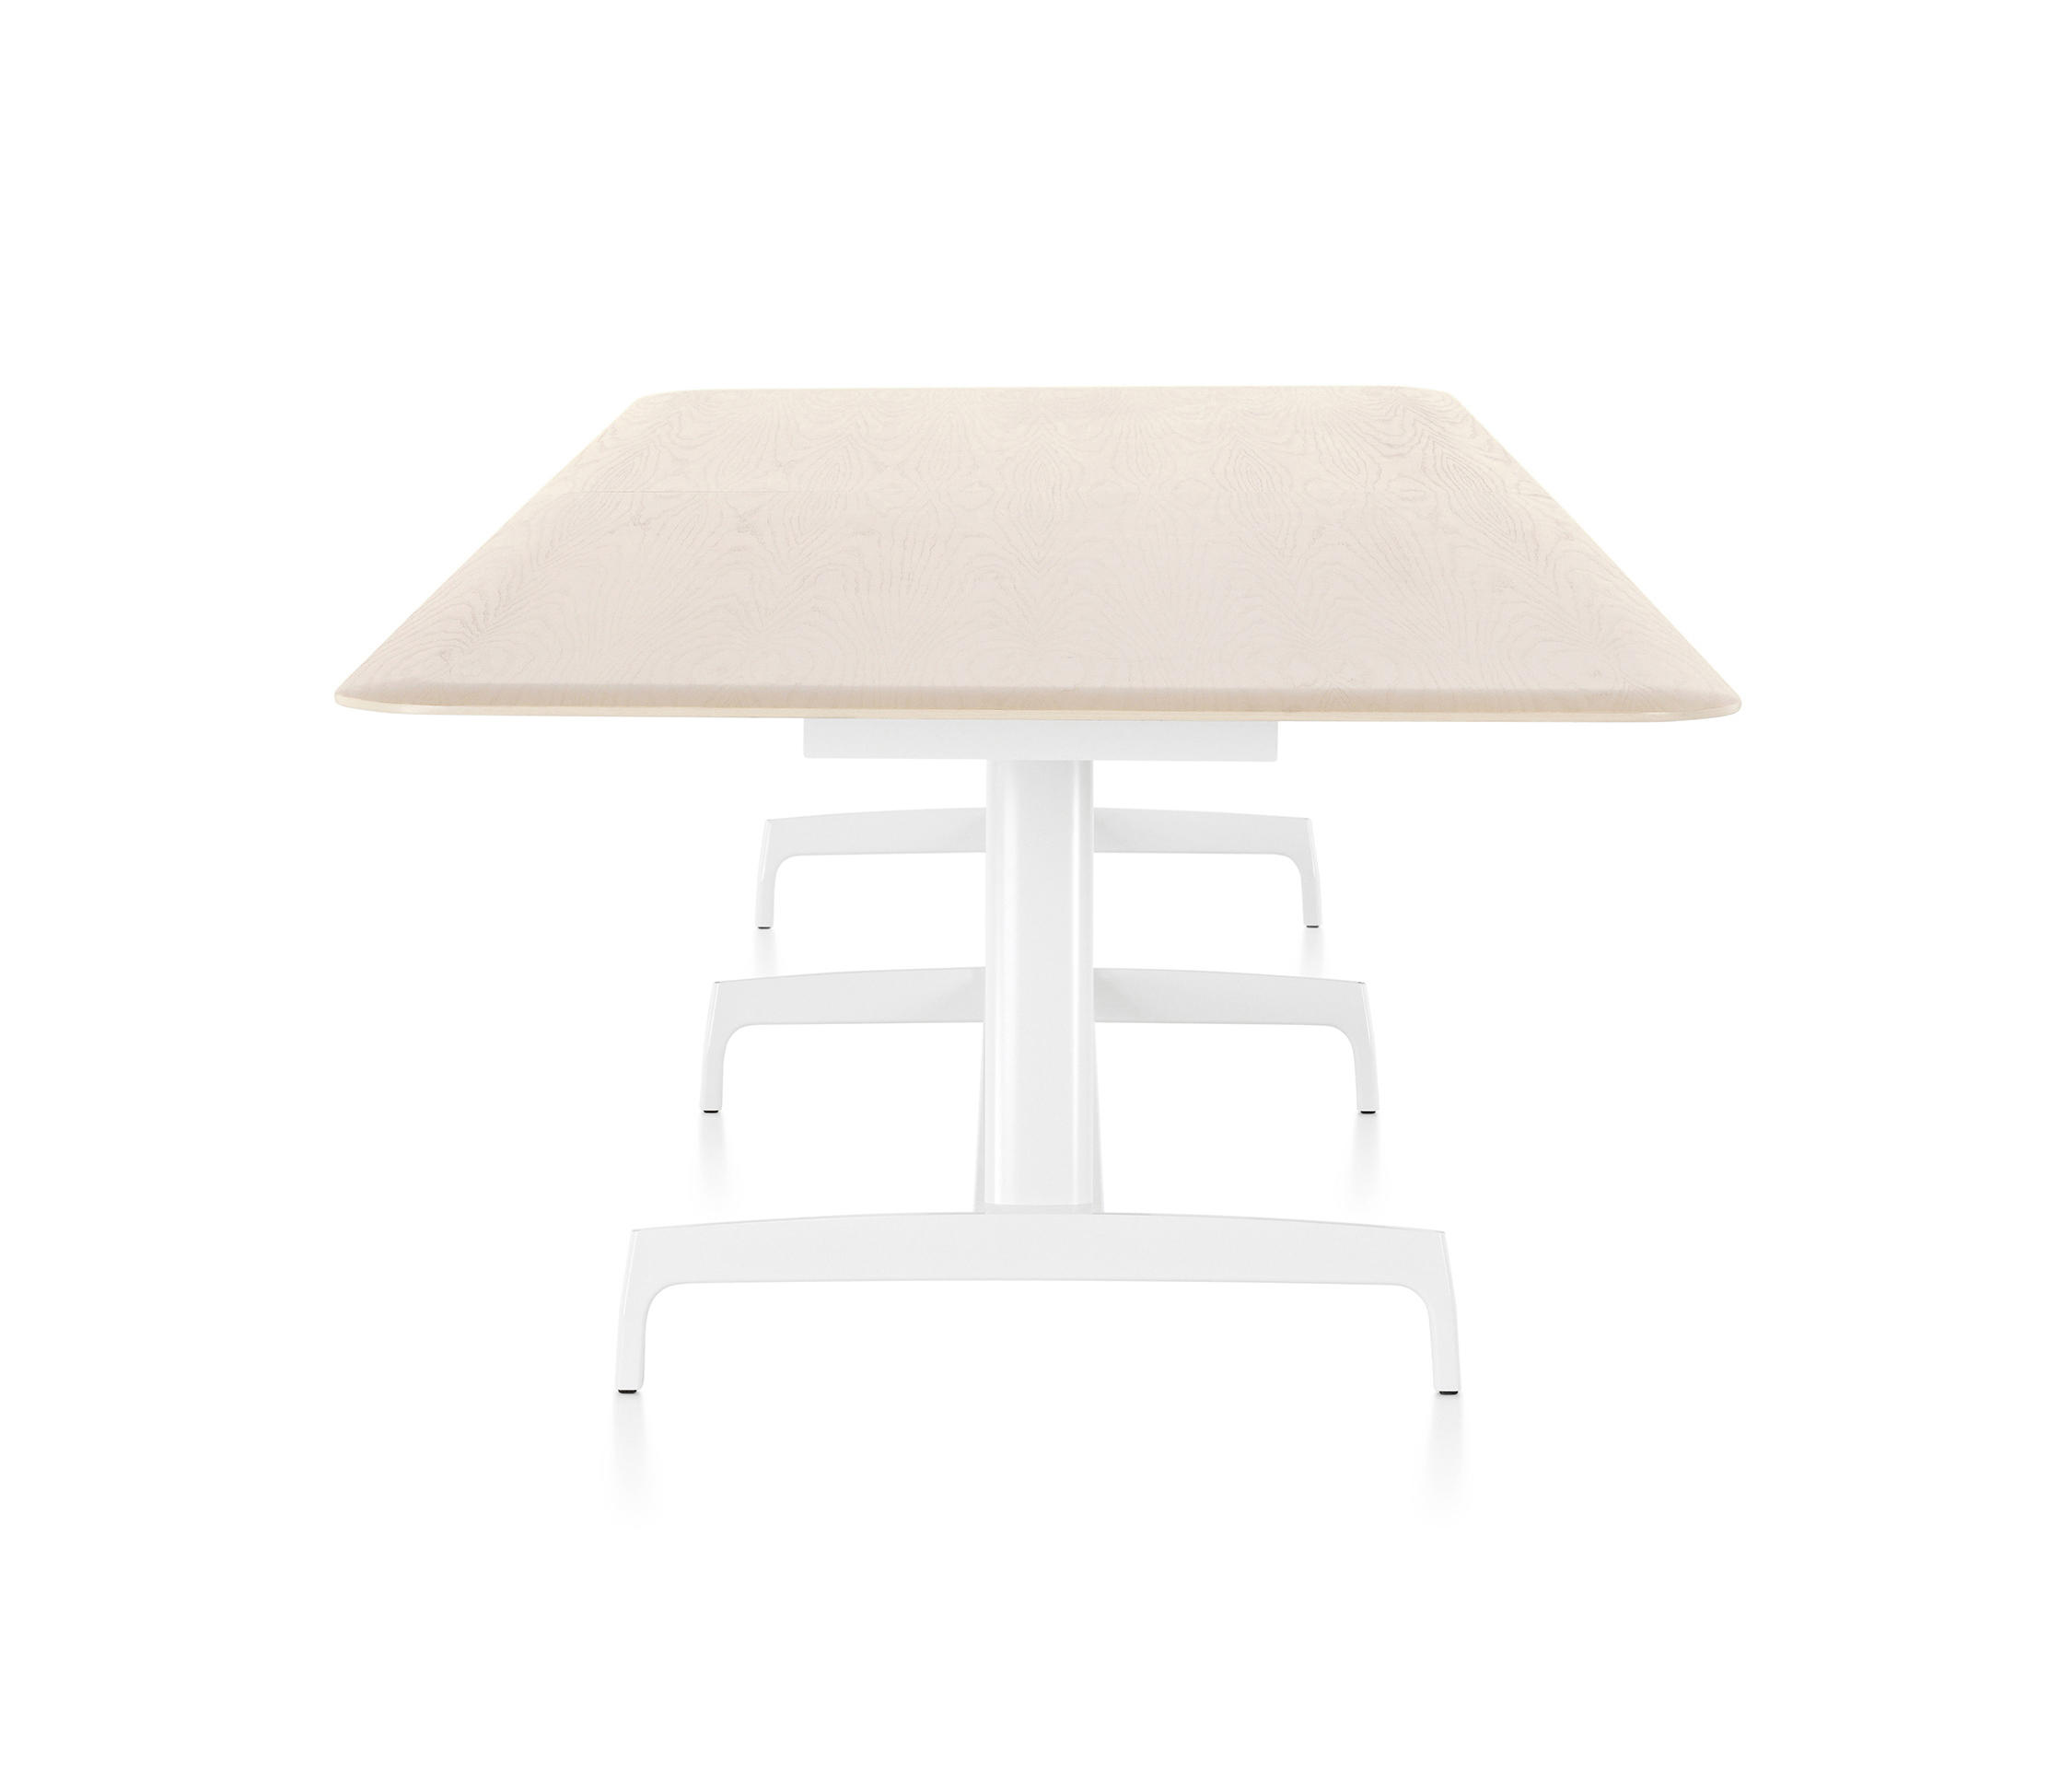 Agl Table Dining Tables From Herman Miller Architonic